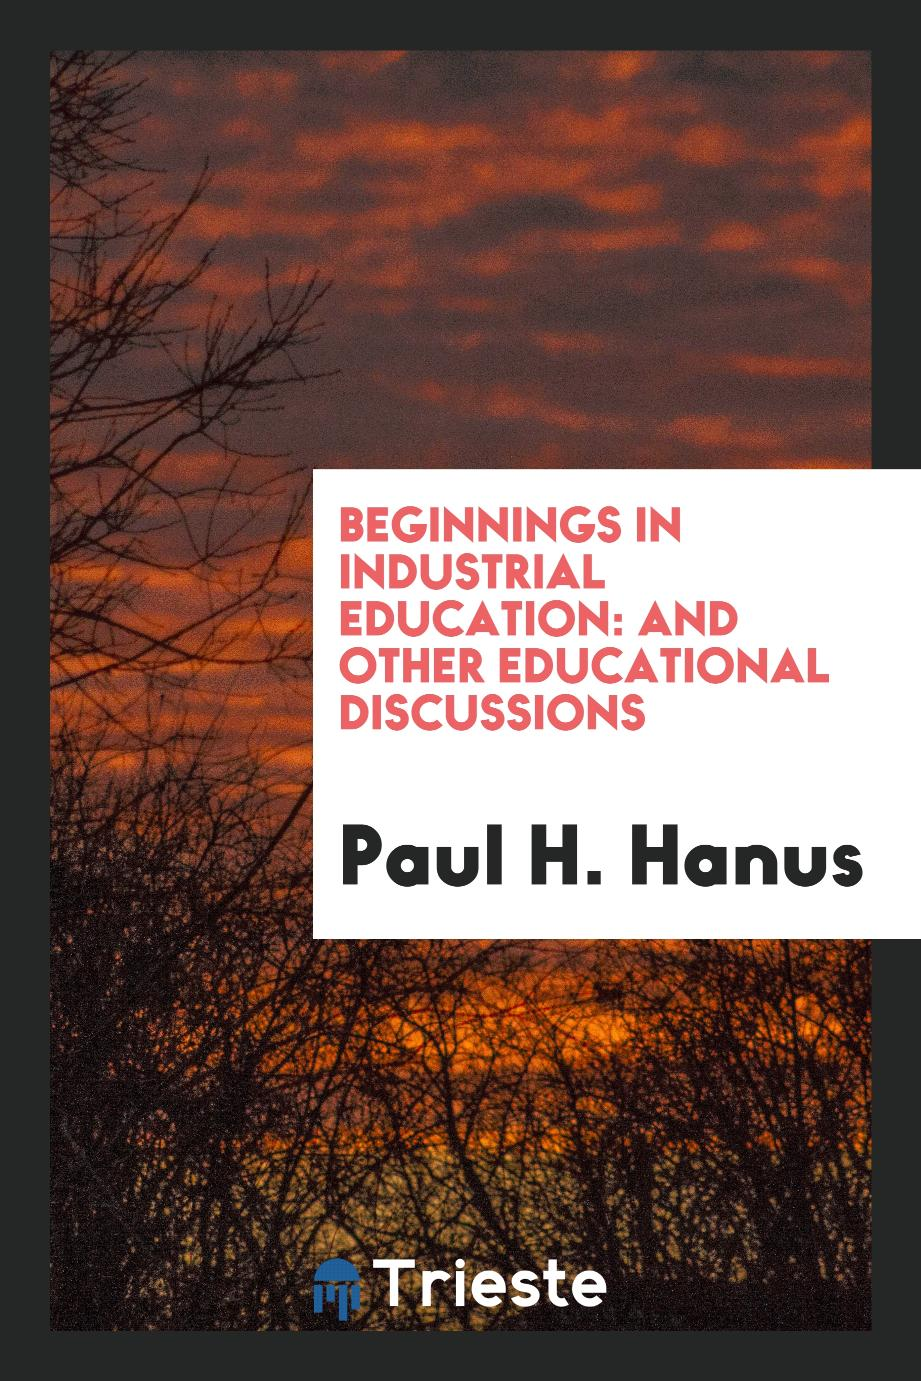 Beginnings in Industrial Education: And Other Educational Discussions